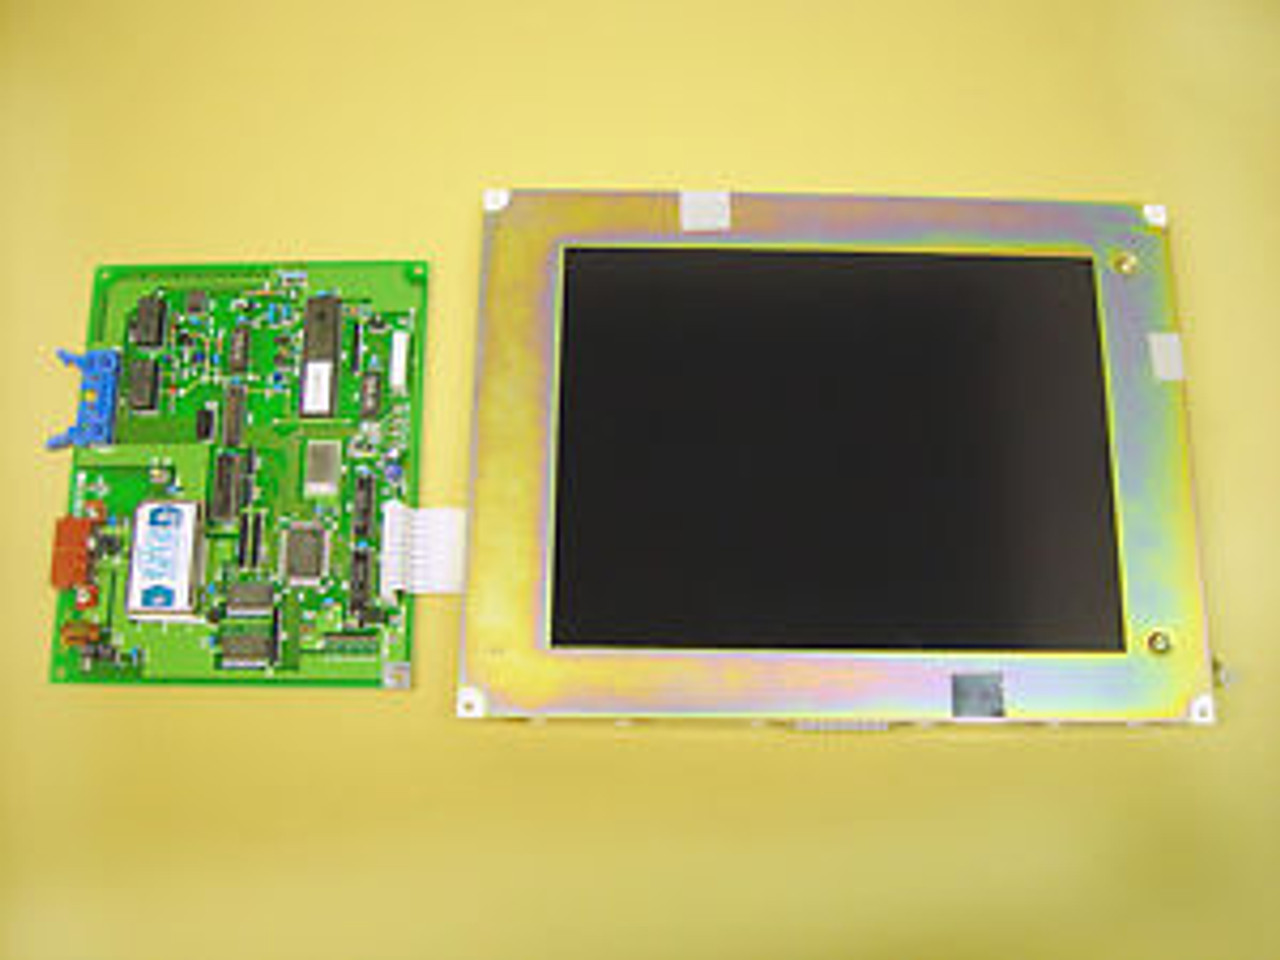 NEW 5.7/'/' LCD DISPLAY PANEL for HITACHI SP14Q005 Fast Free Shipping.Warranty